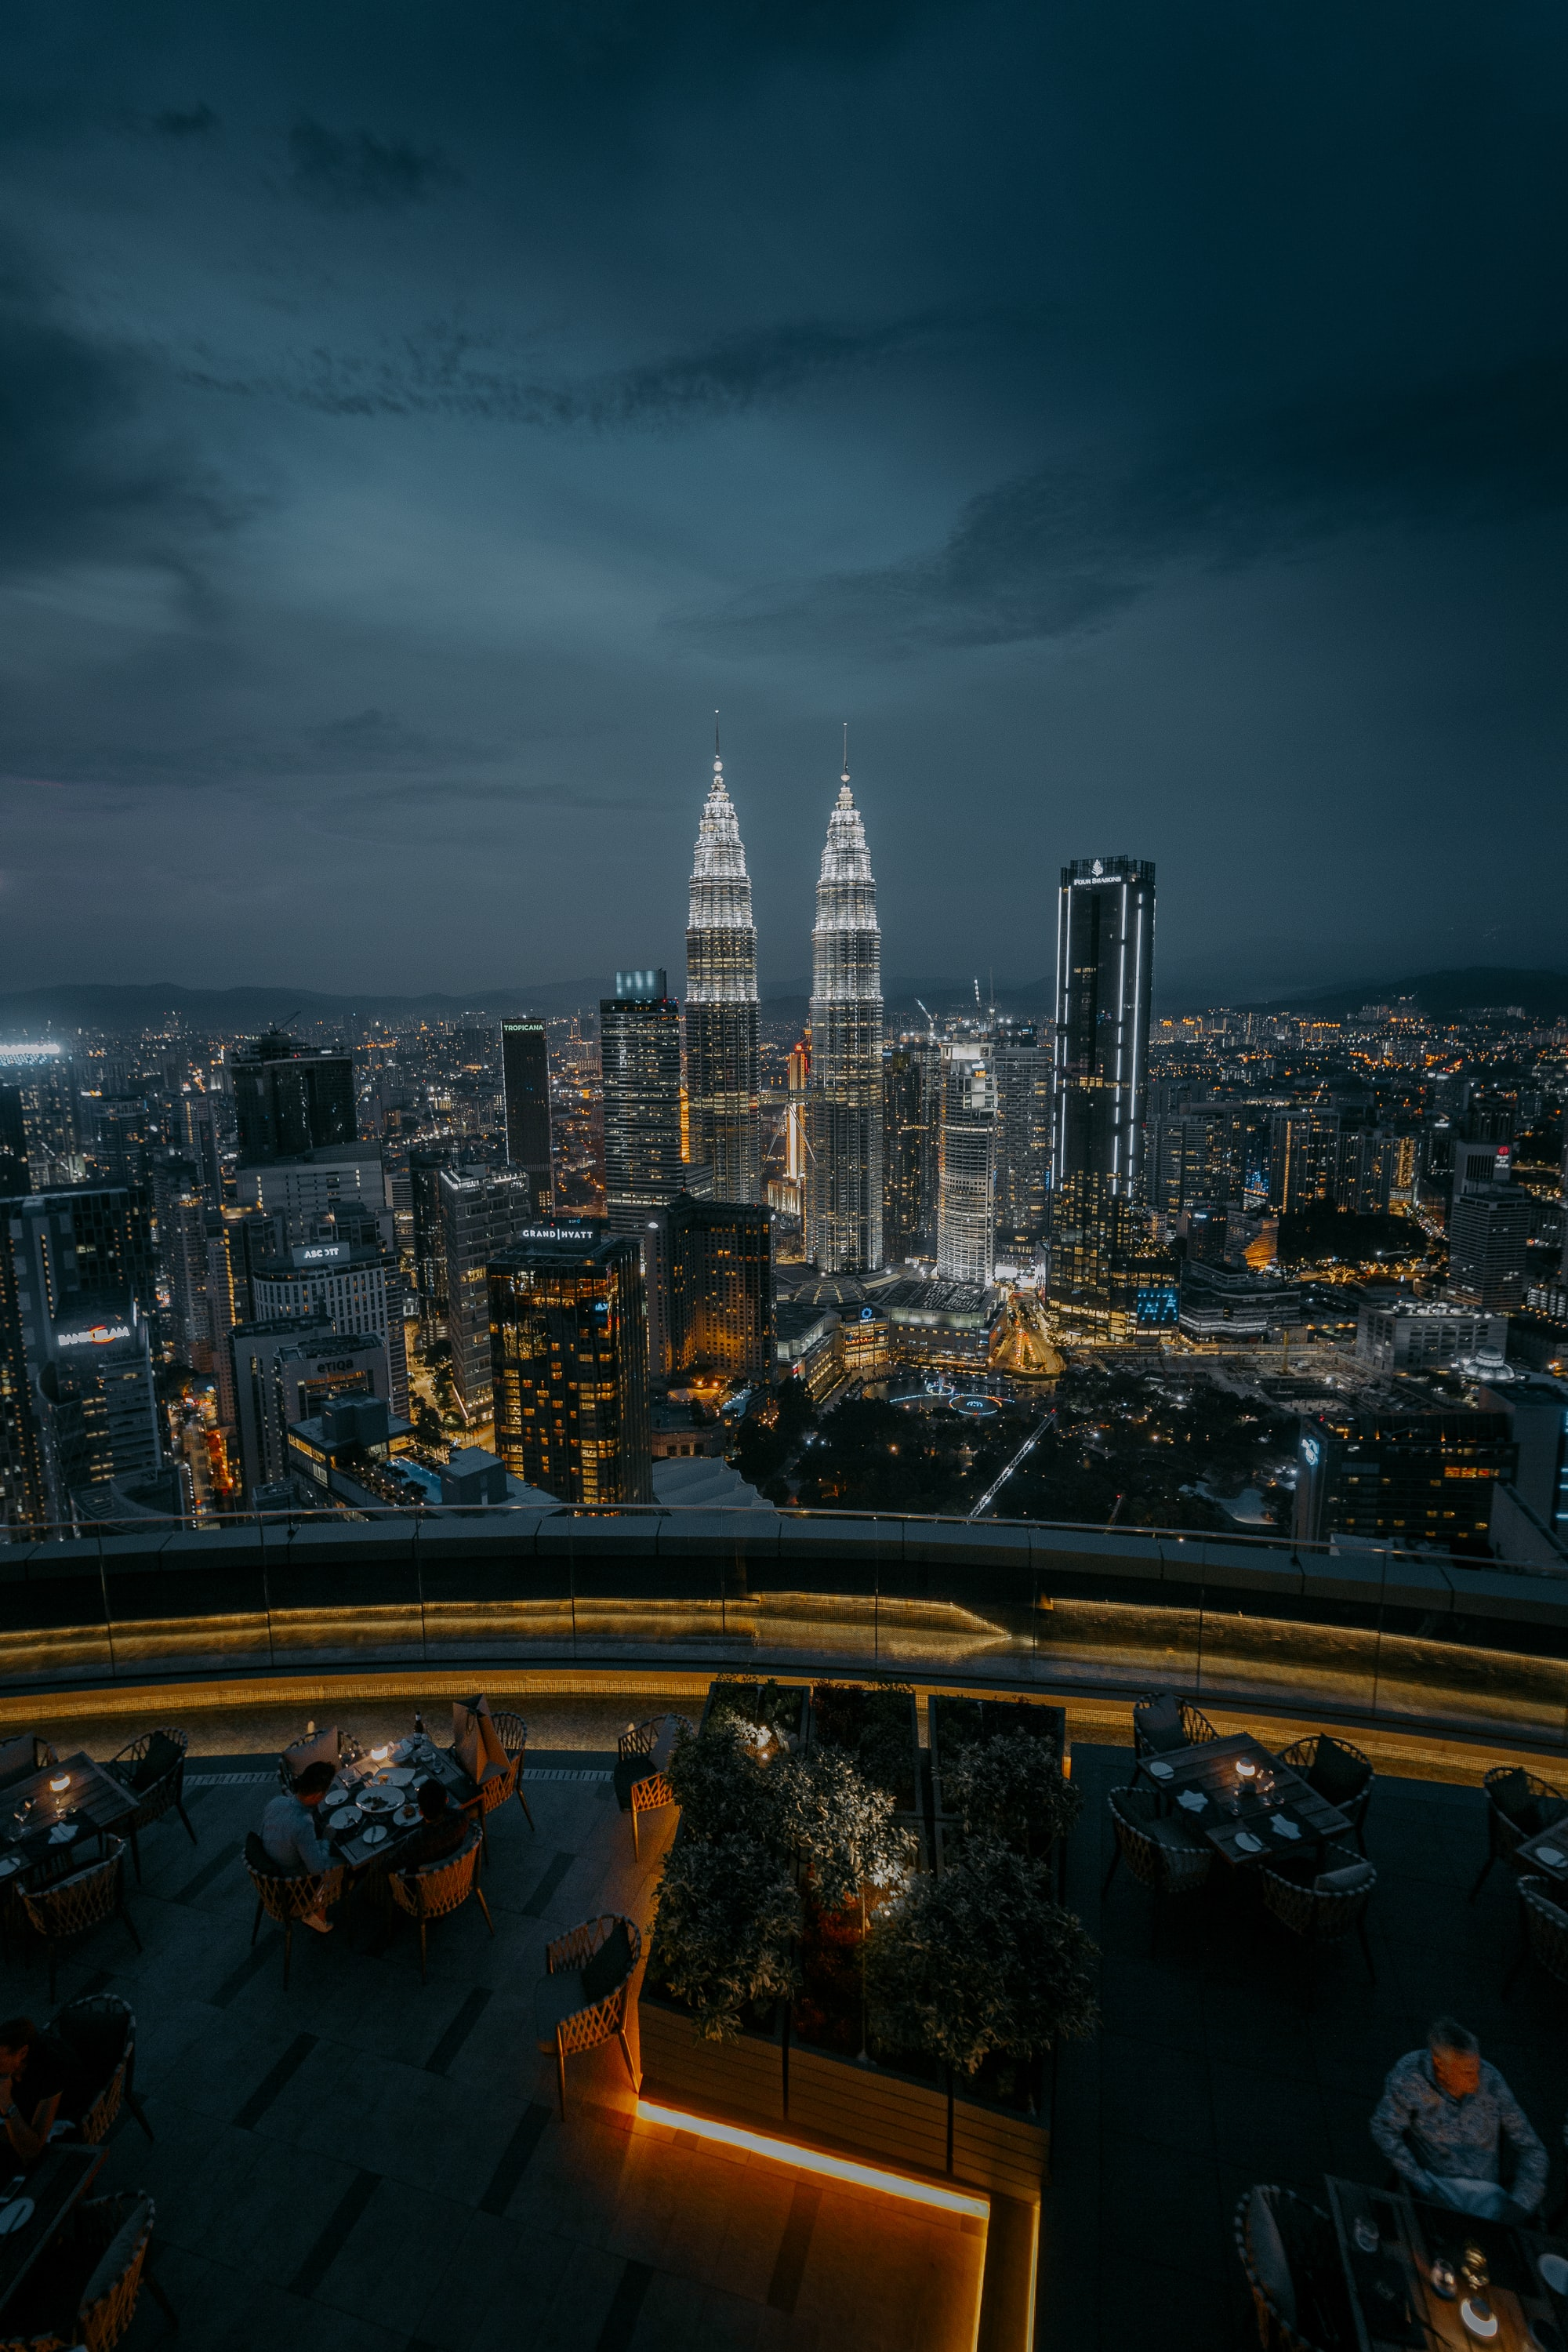 A country that often don't get much attention in Asia - Malaysia